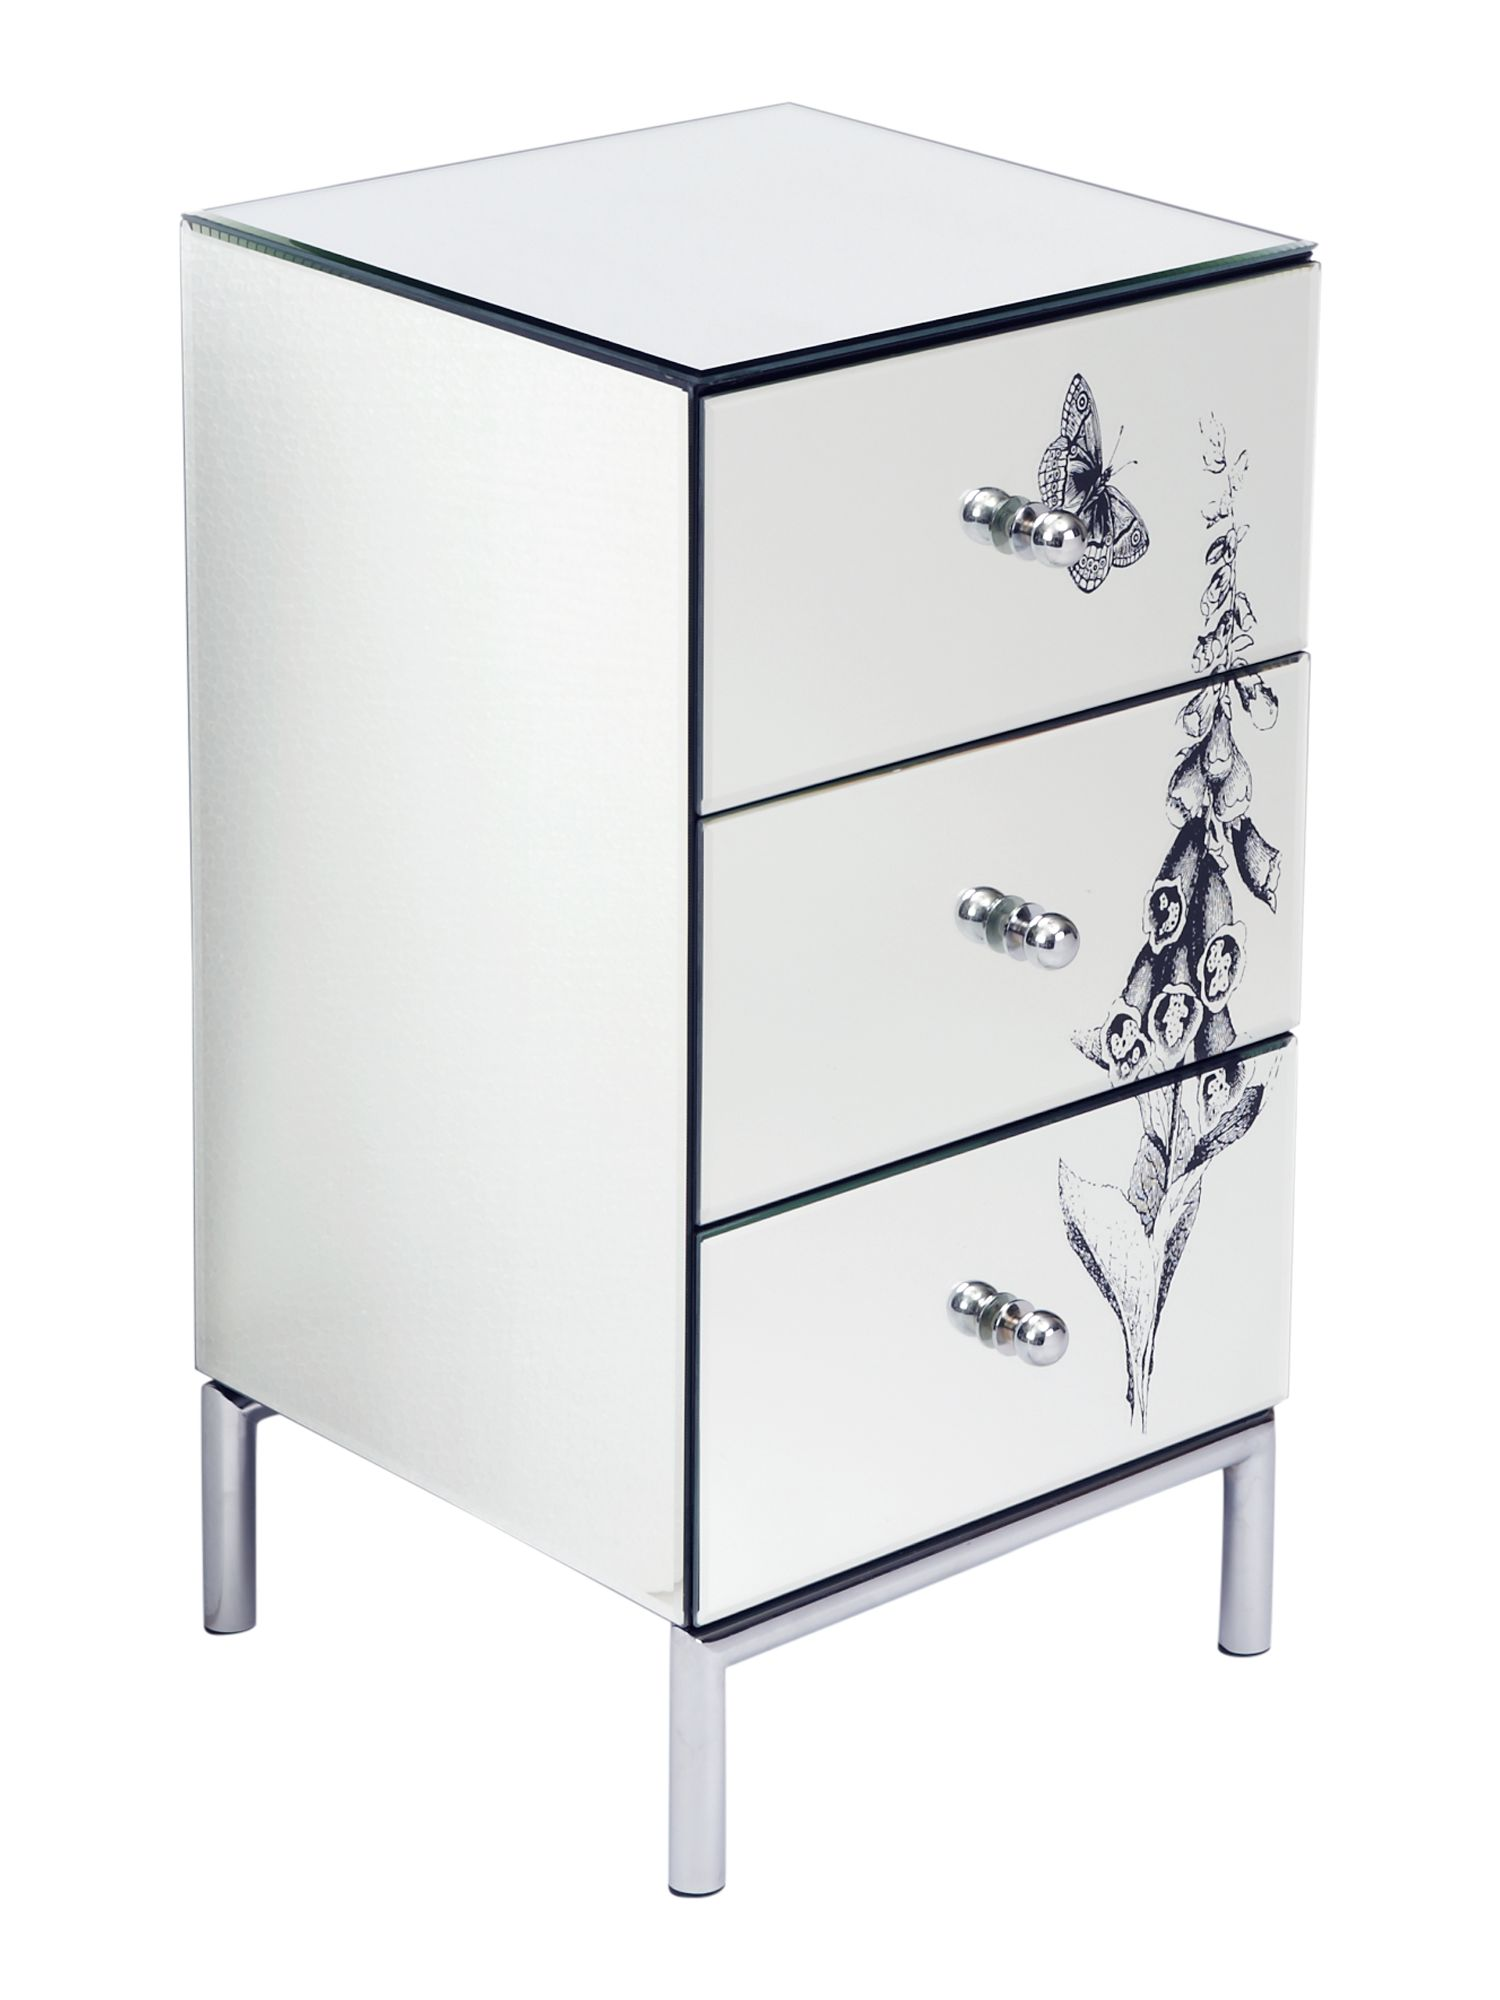 Foxglove 3 drawer mirrored bedside chest